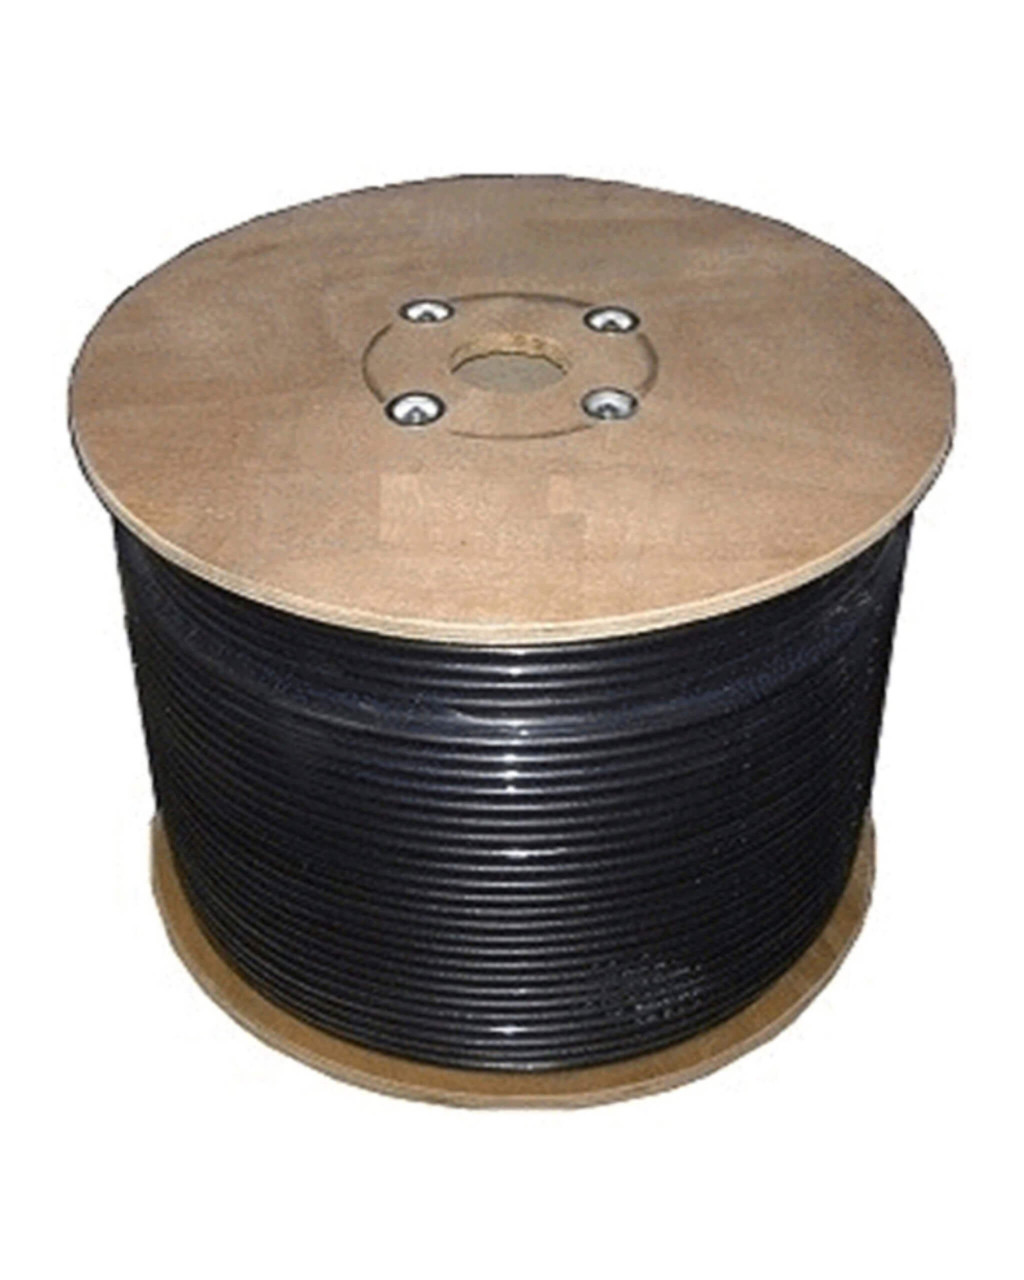 Bolton 400 Low Loss Cable - Black Color Spool No Connector 500 ft